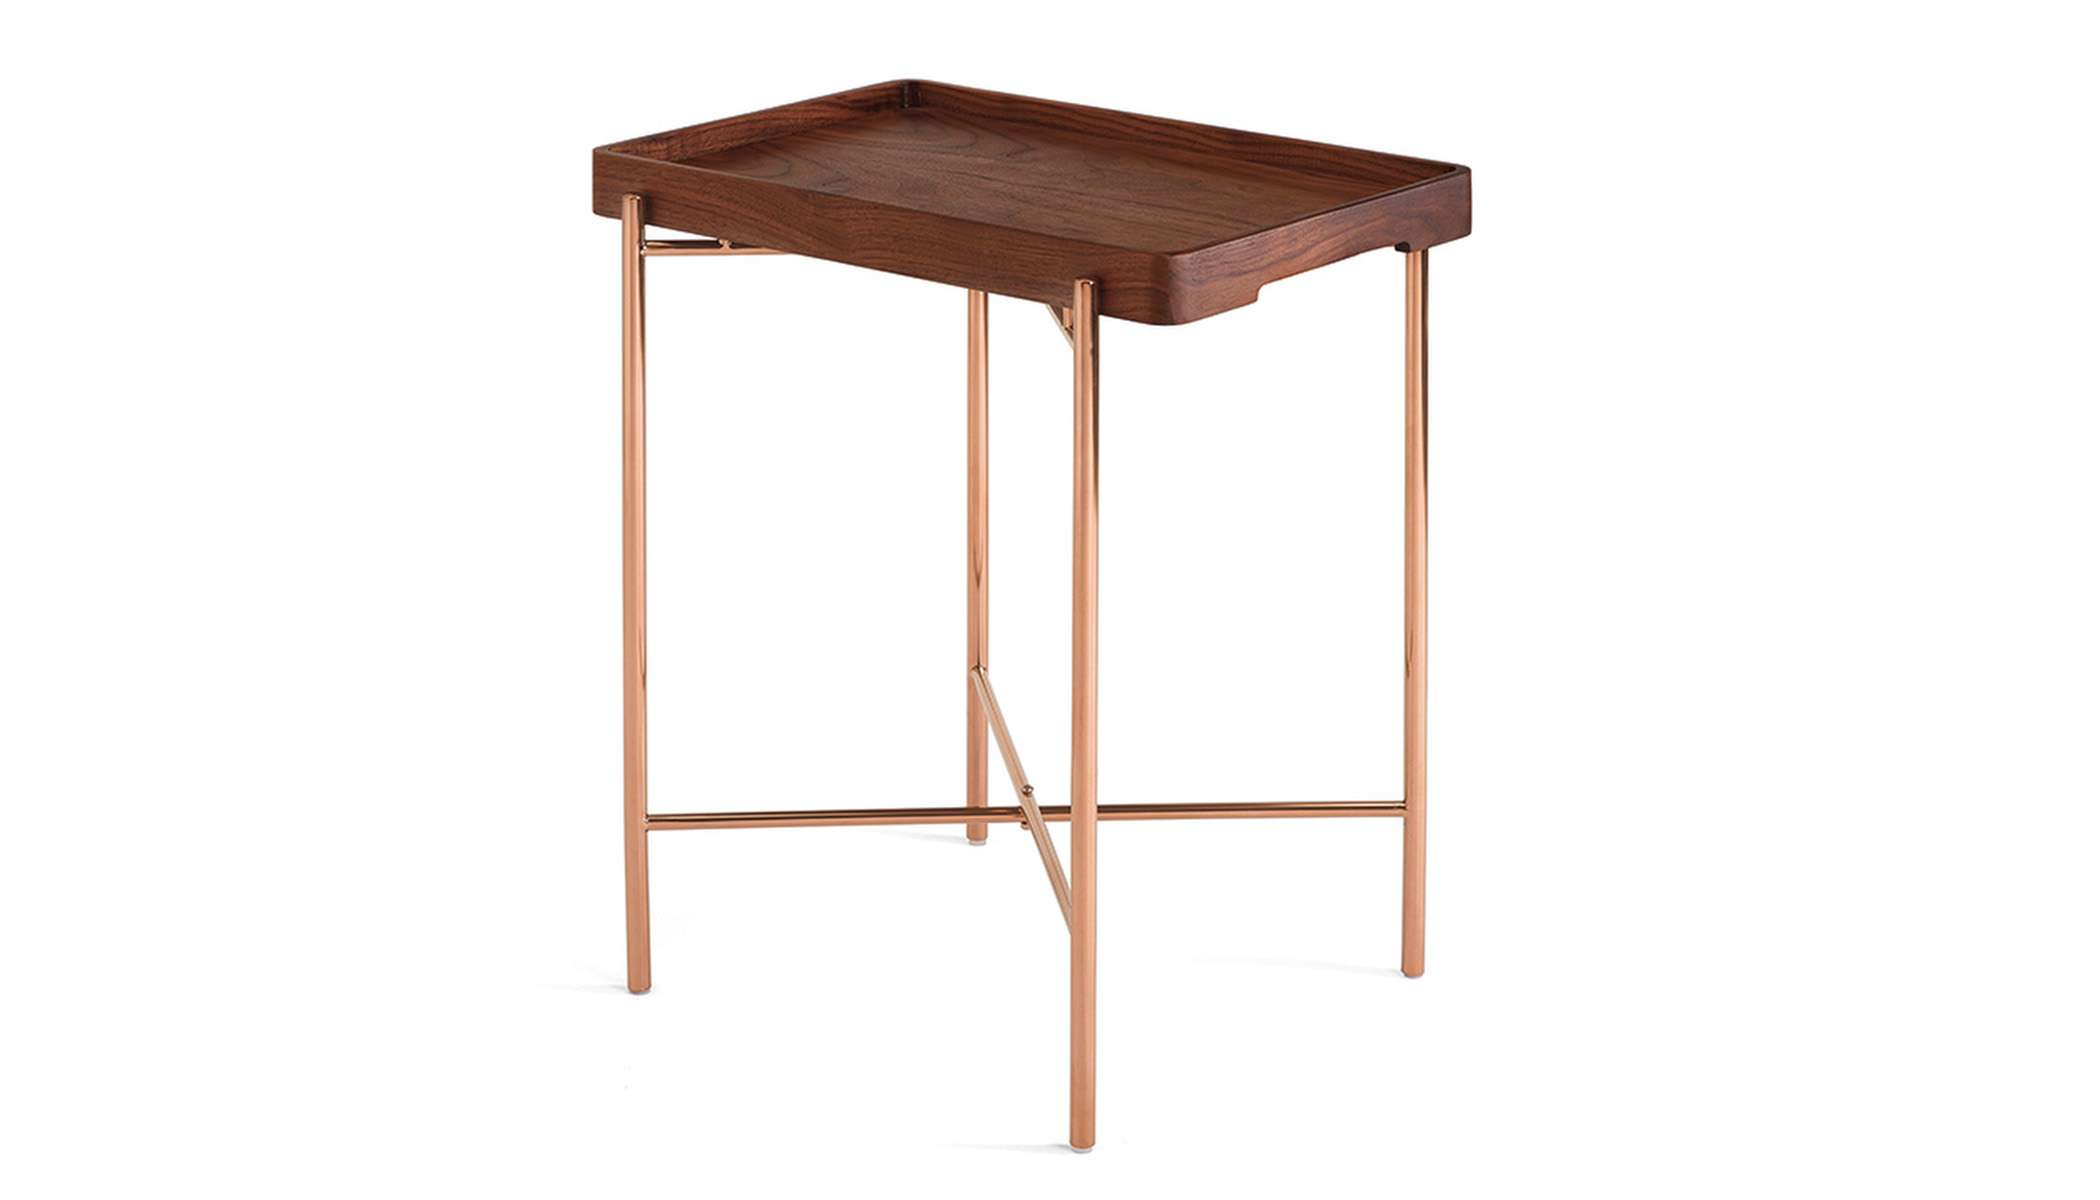 Folding Table In Walnut And Metal Hk 2 475 From Tang